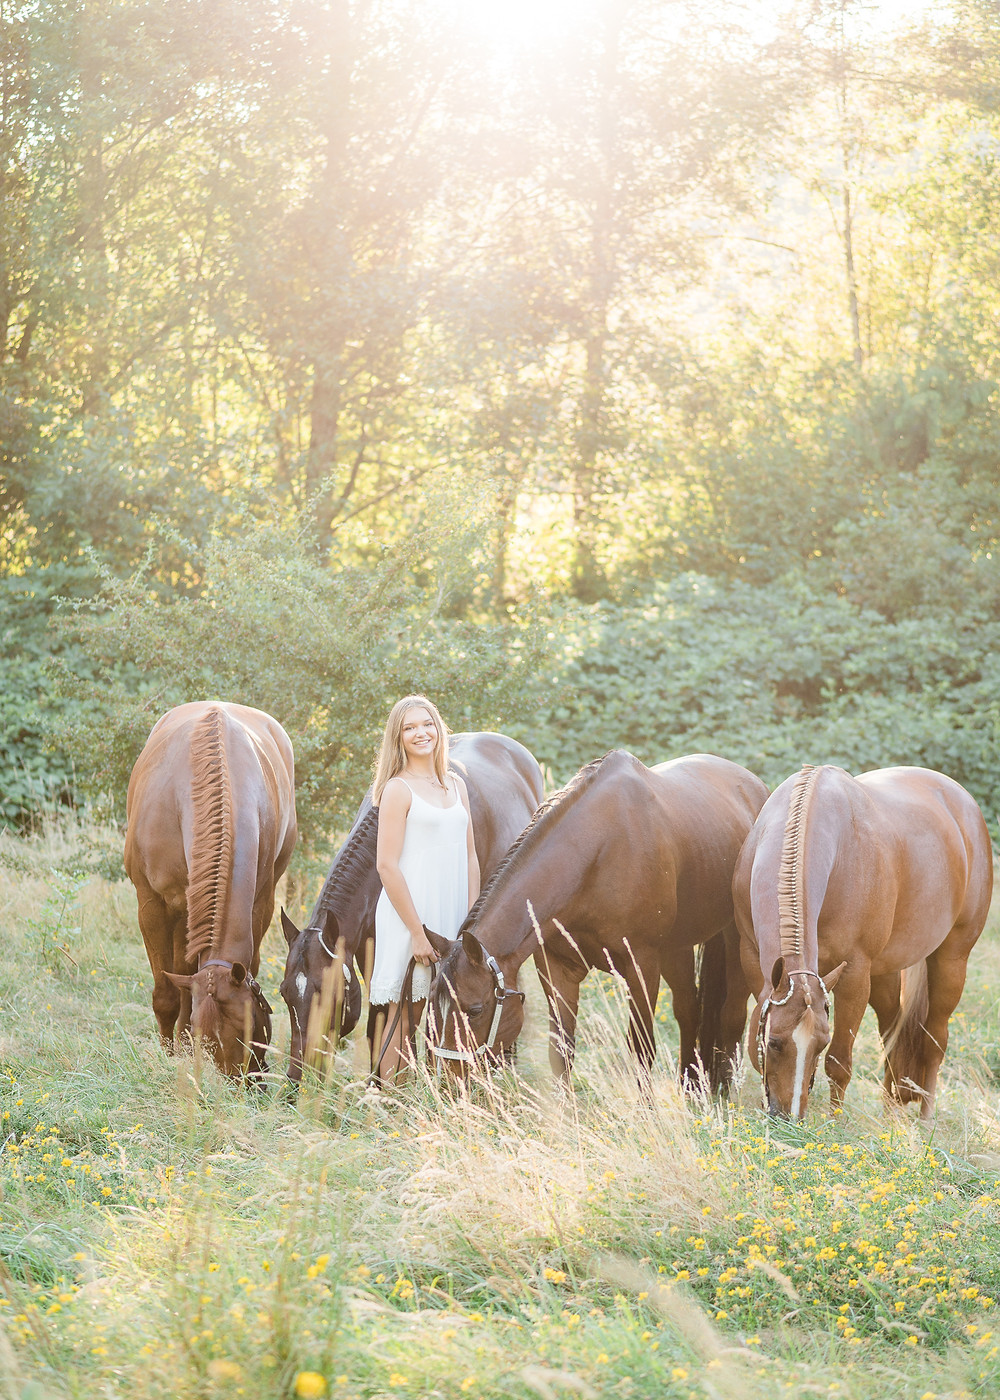 Anya with all four of her horses, Indie, Tex, Belle, and Barbee